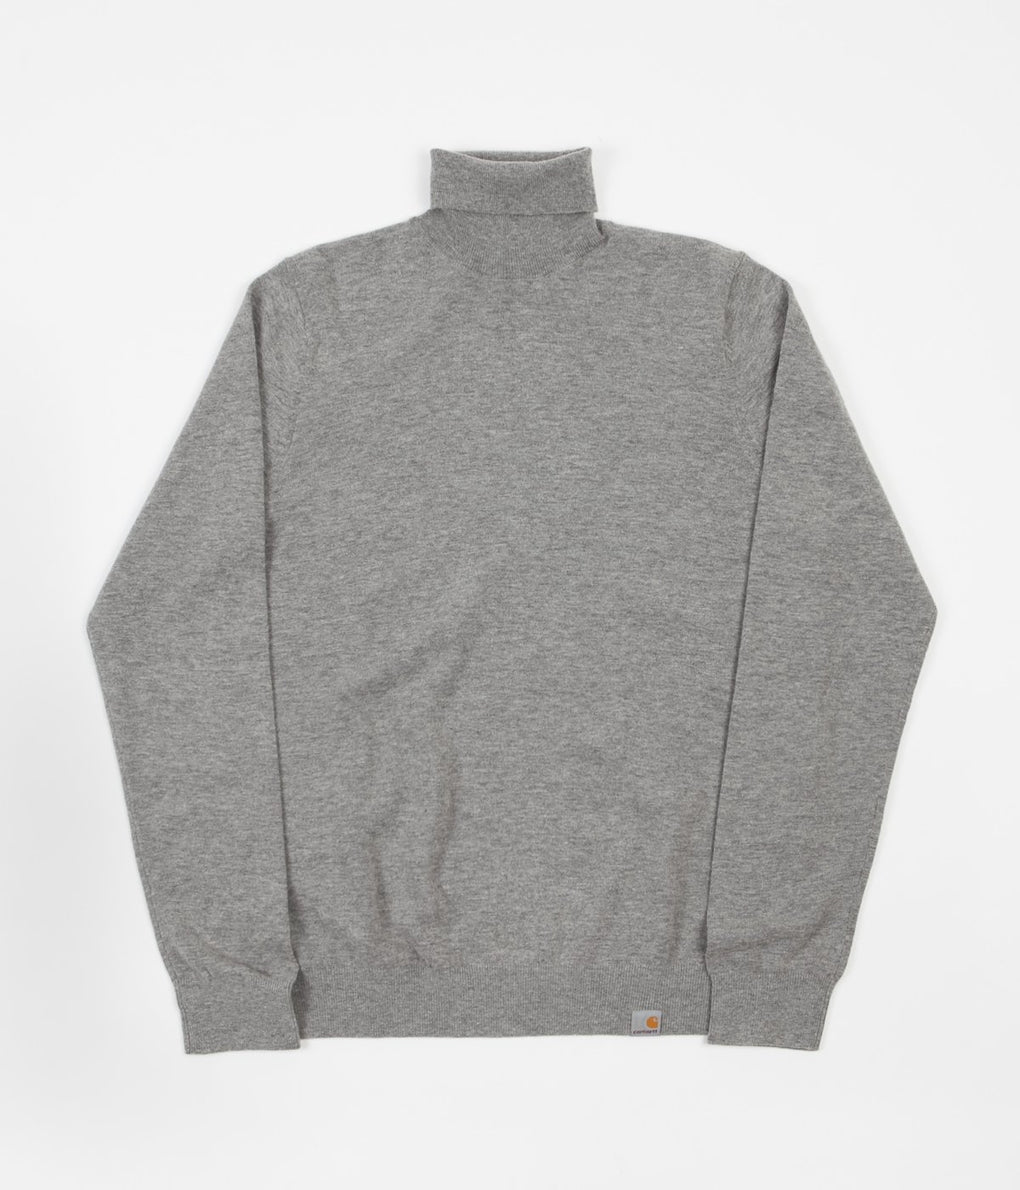 Carhartt Playoff Turtleneck Sweatshirt - Grey Heather